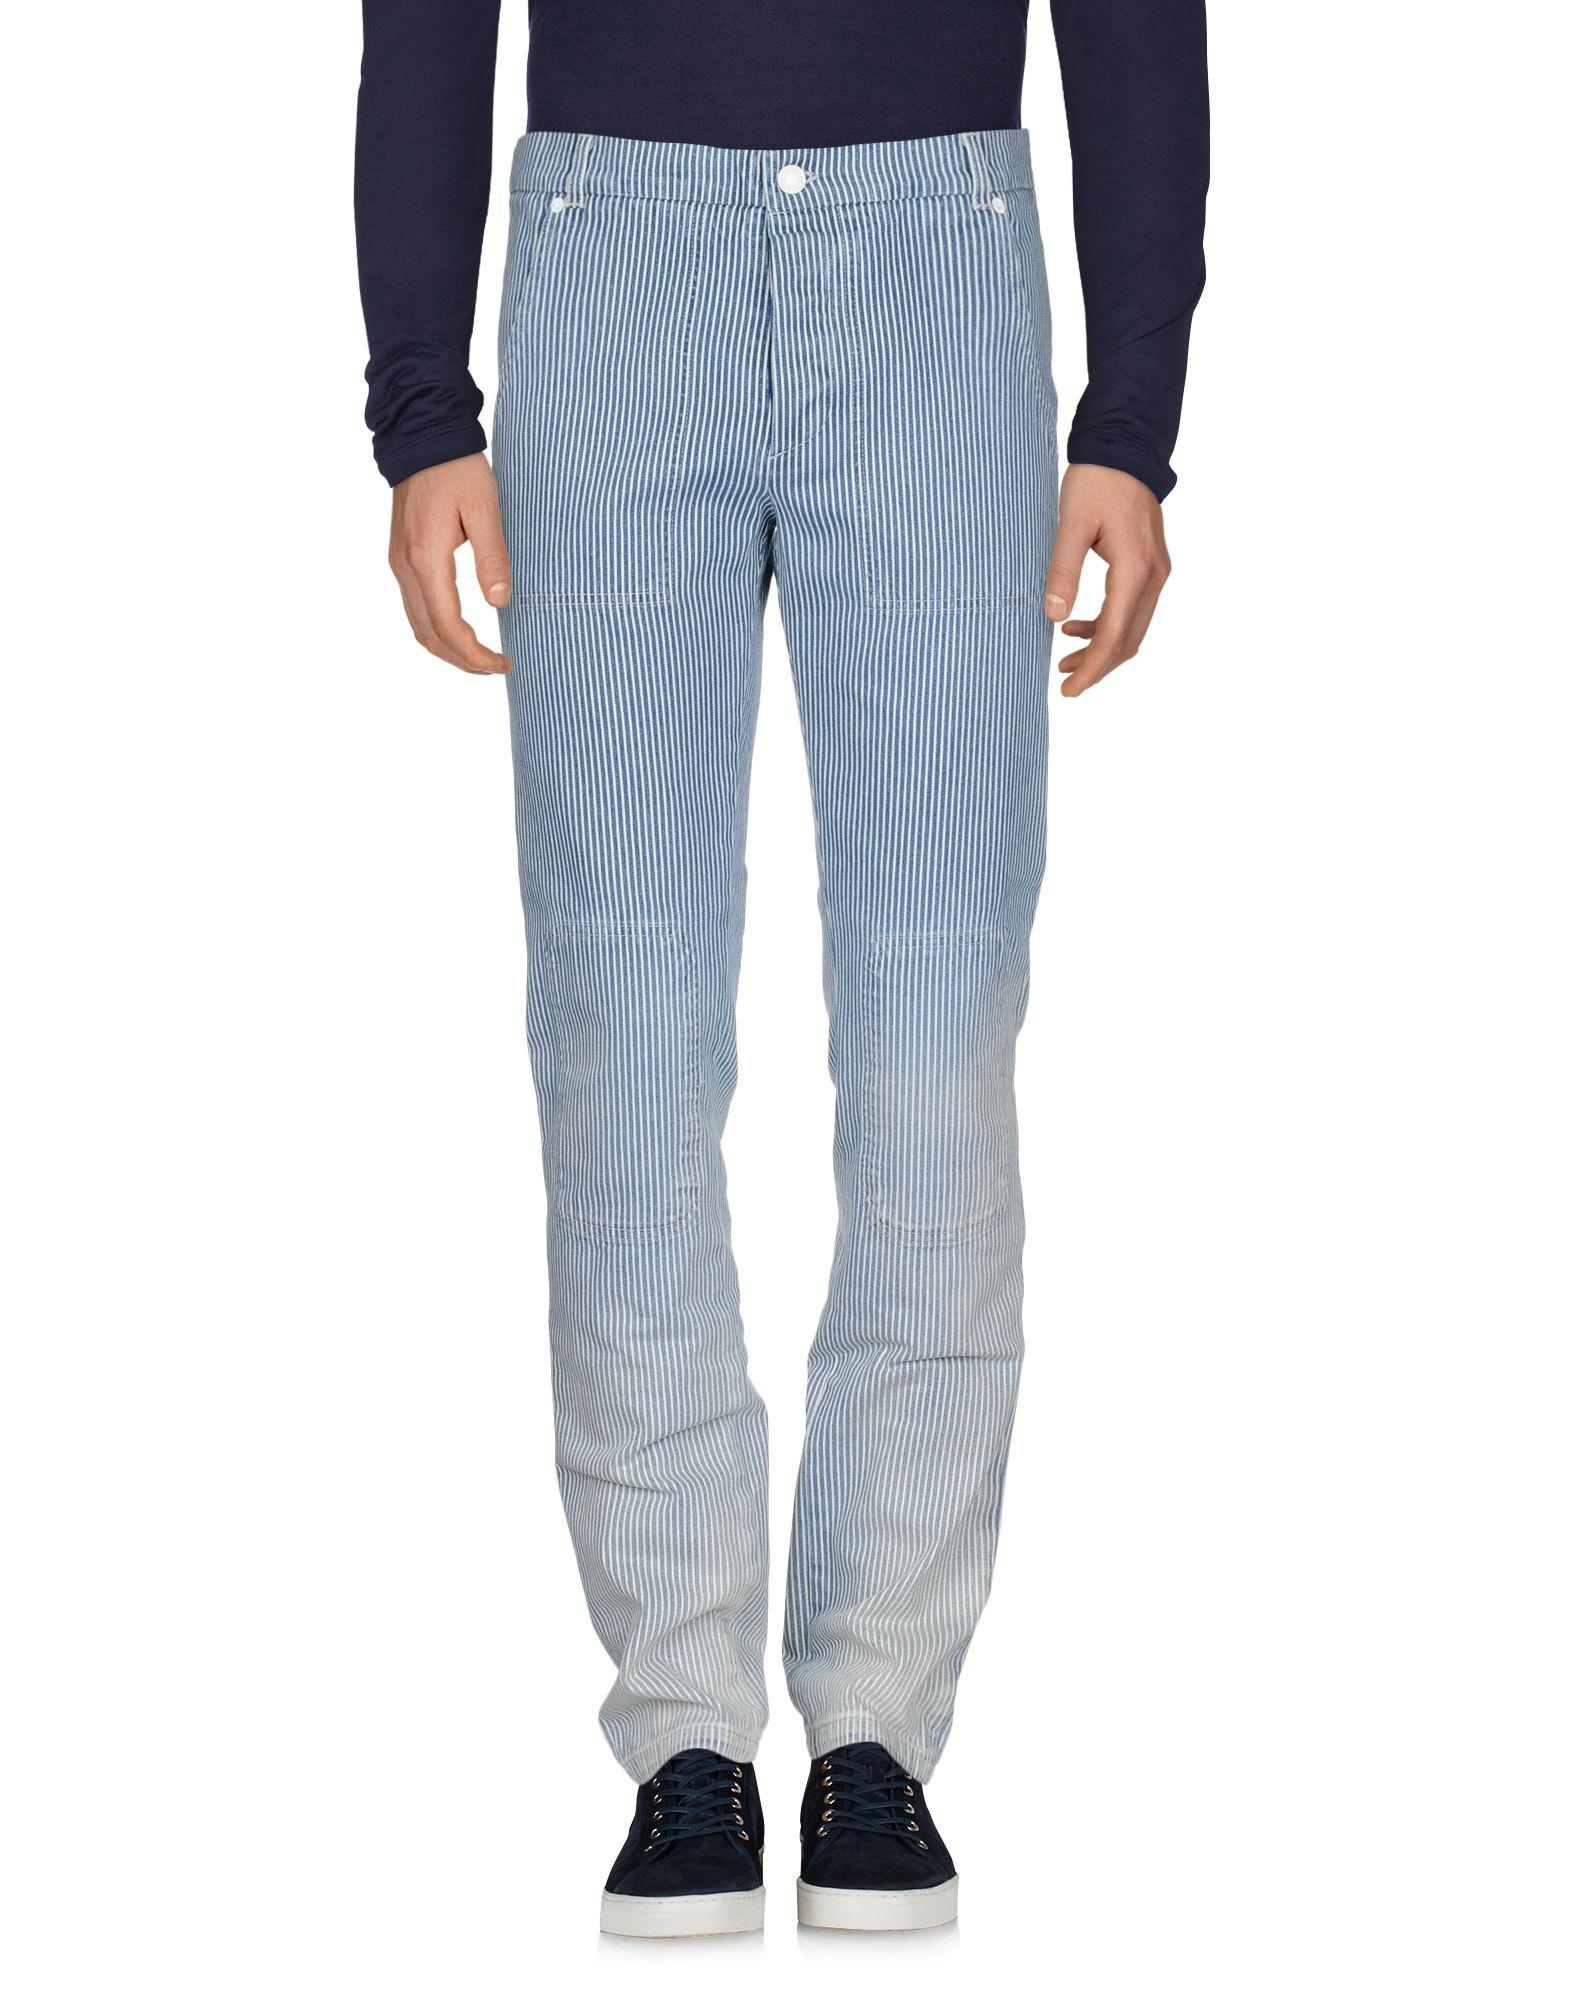 Clearance Cheapest Price DENIM - Denim trousers Band Of Outsiders Cheap Sale Real 100% Authentic Cheap Price Sale The Cheapest Many Colors fyFc39